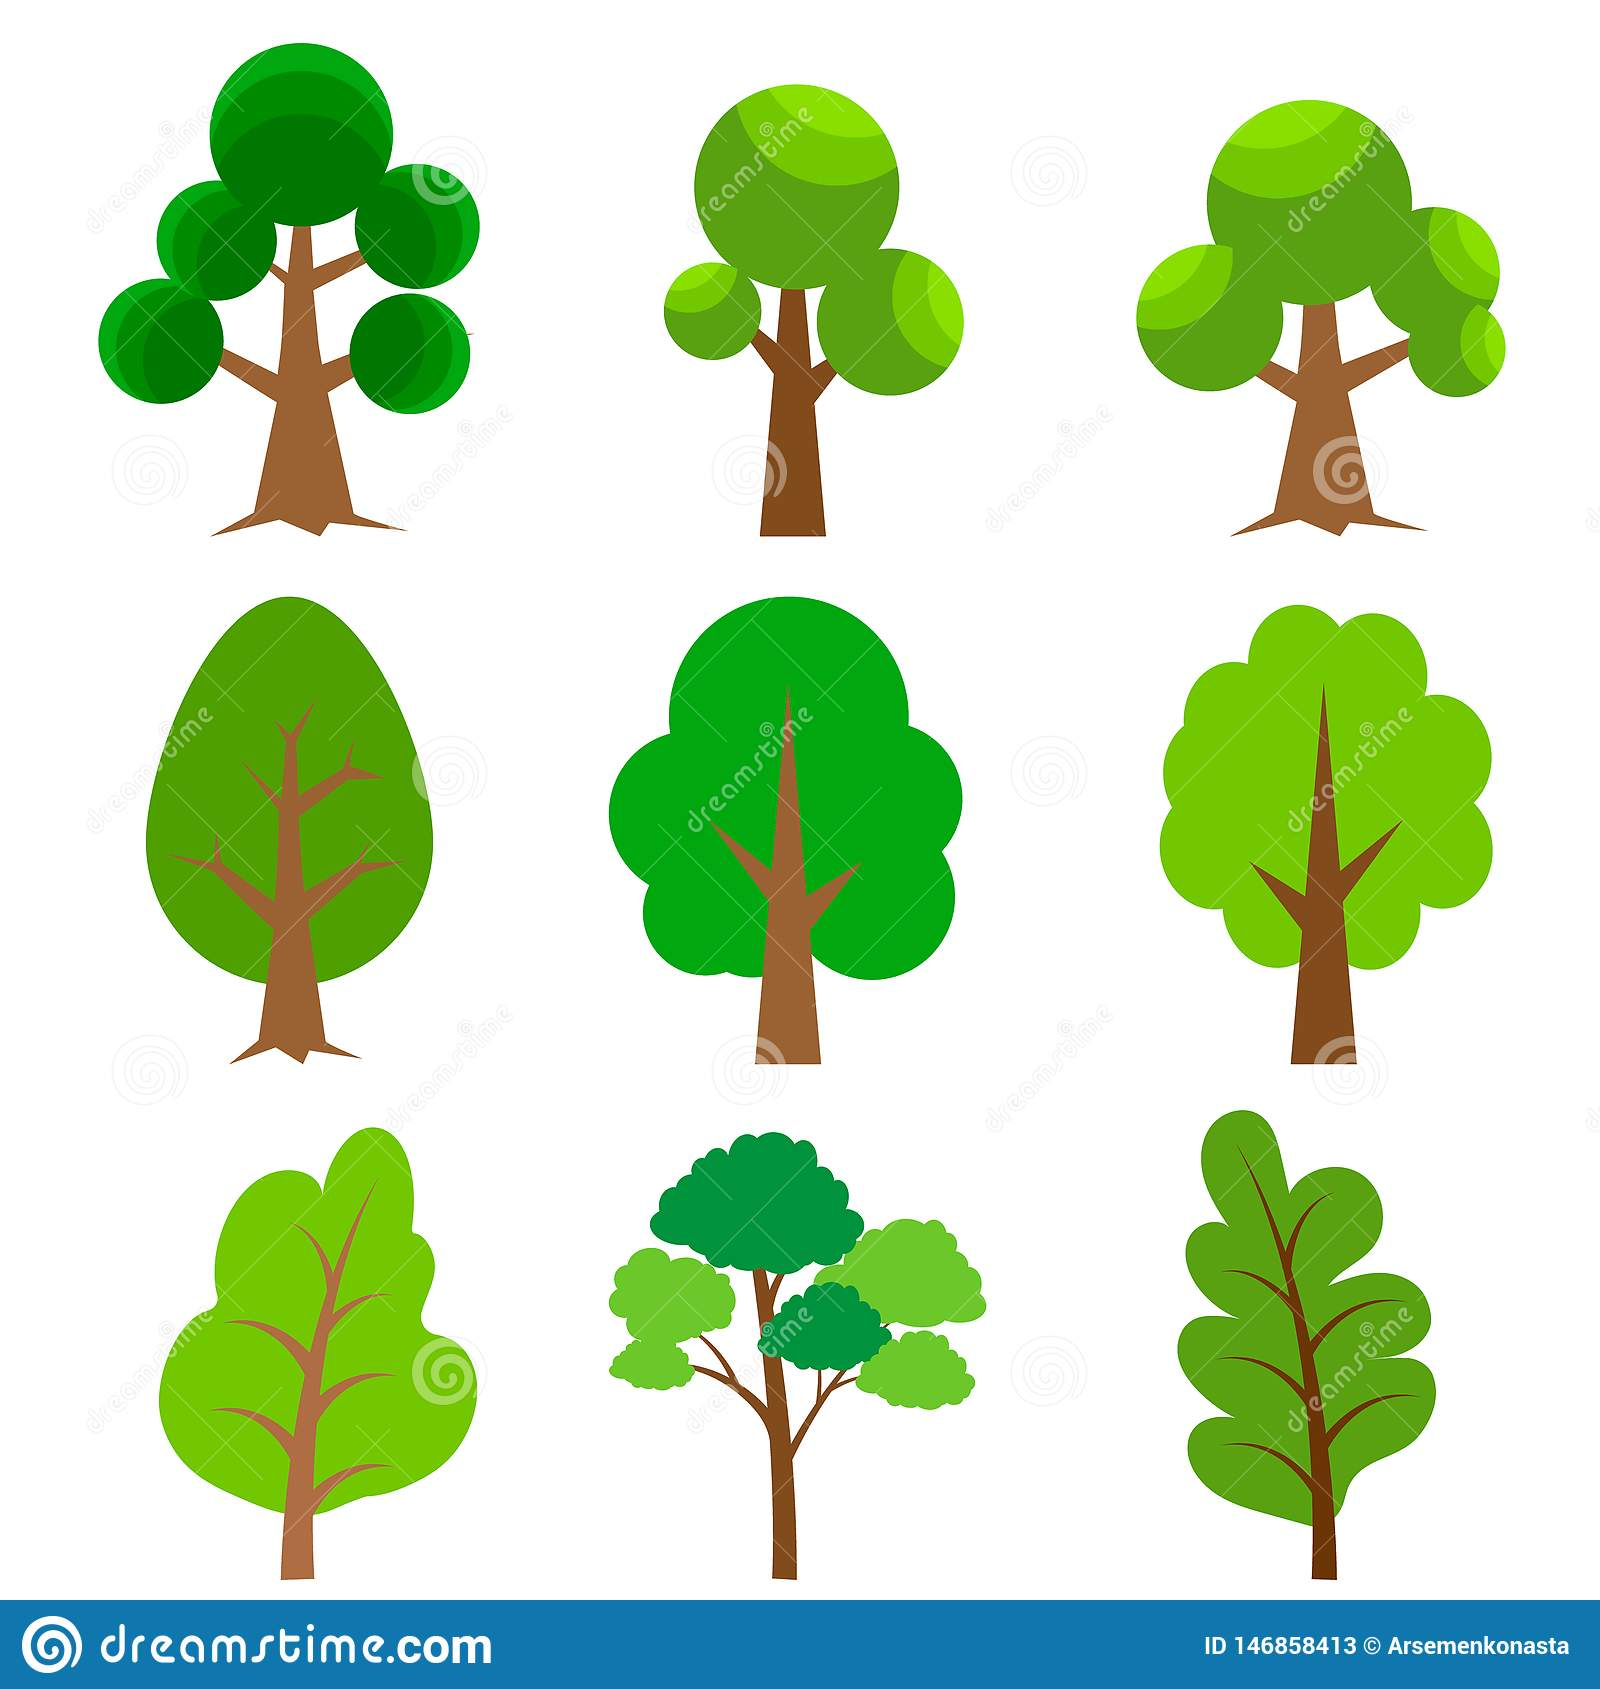 Cartoon Trees Big Set Difference Shape Tree Vector Illustration Tree For Game Design Or Landscape Nature In Park Stock Vector Illustration Of Abstract Graphic 146858413 Vector tagged as animal clipart black and white, animal outline. https www dreamstime com cartoon trees big set difference shape tree vector illustration game design landscape nature park different flat image146858413